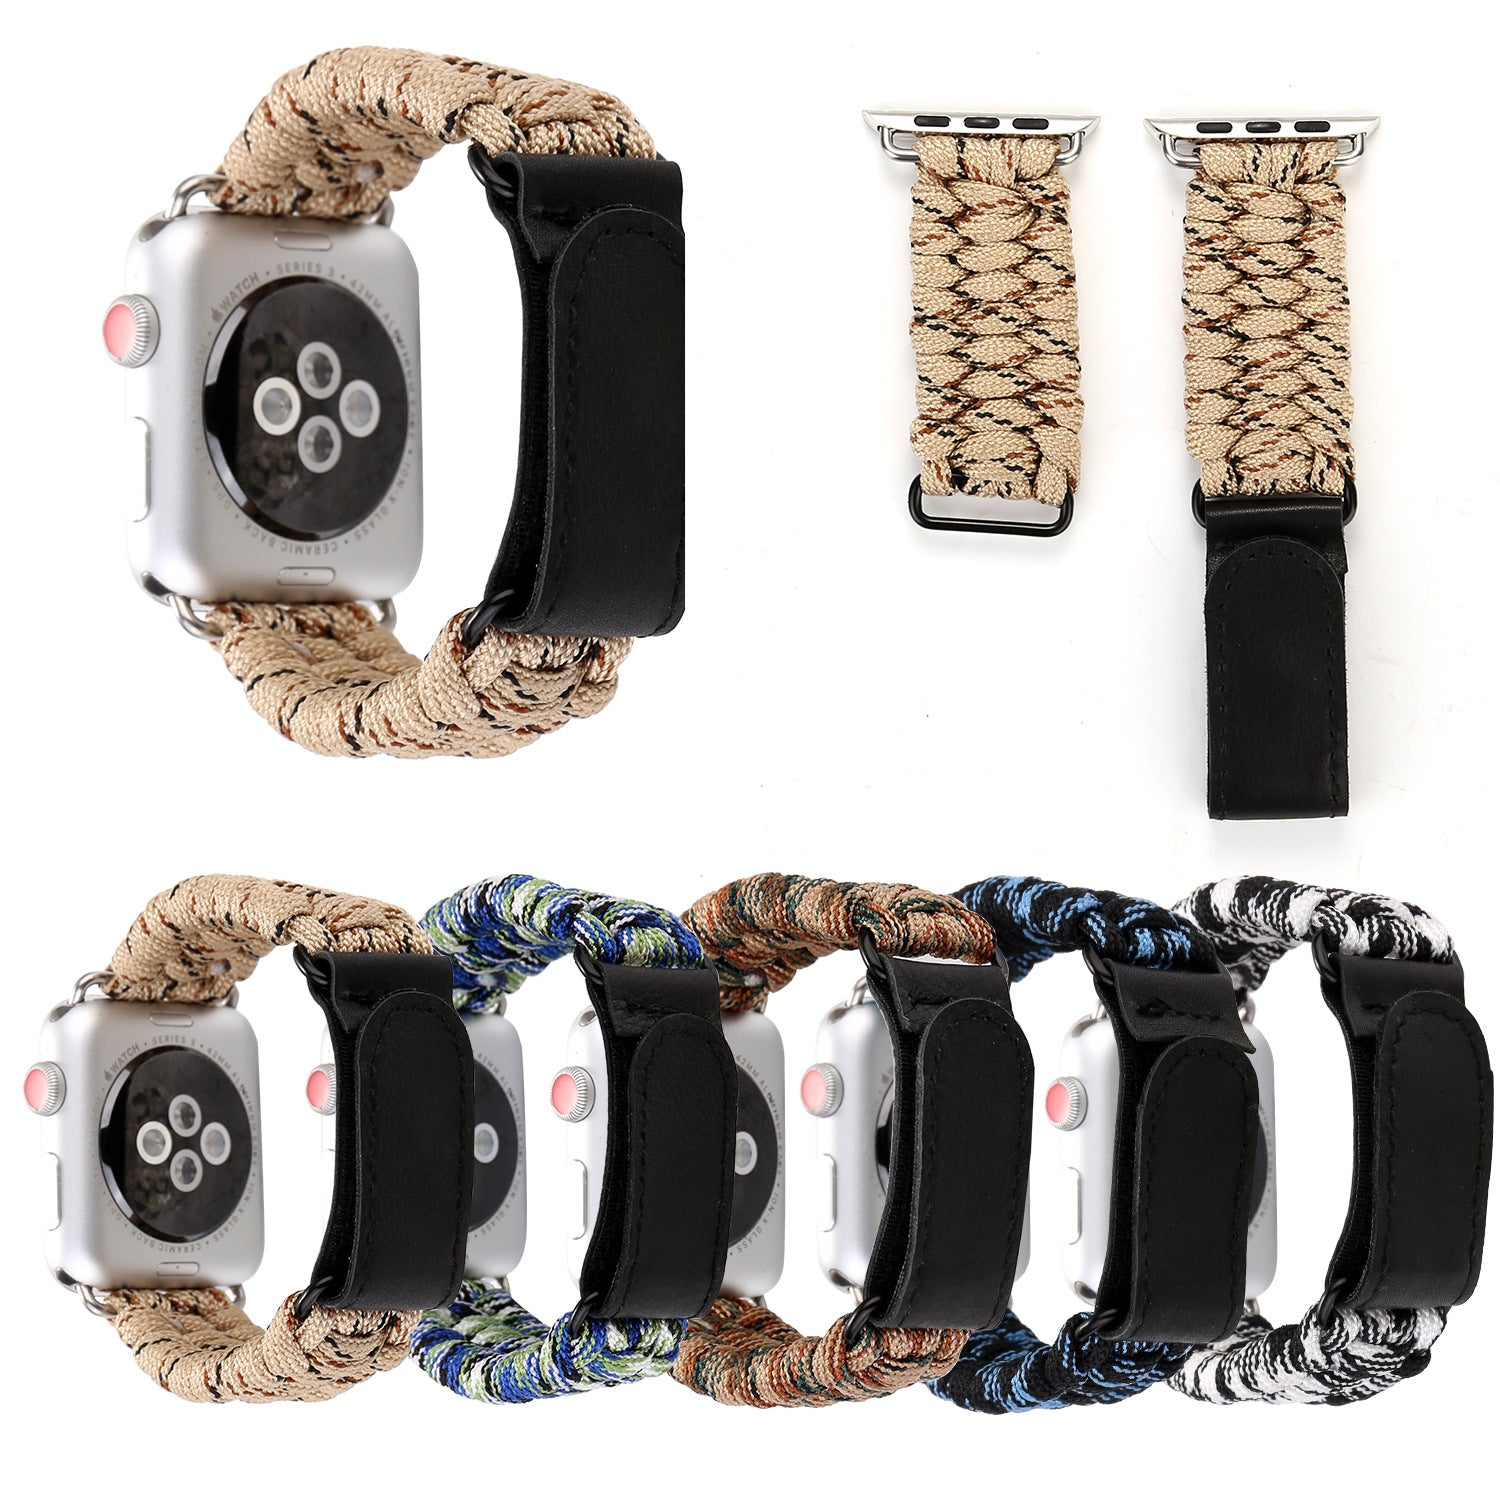 Outdoor Camouflage Velcro Strap For Apple Watch Series 1,2,3,4 -  - TomorrowSummer